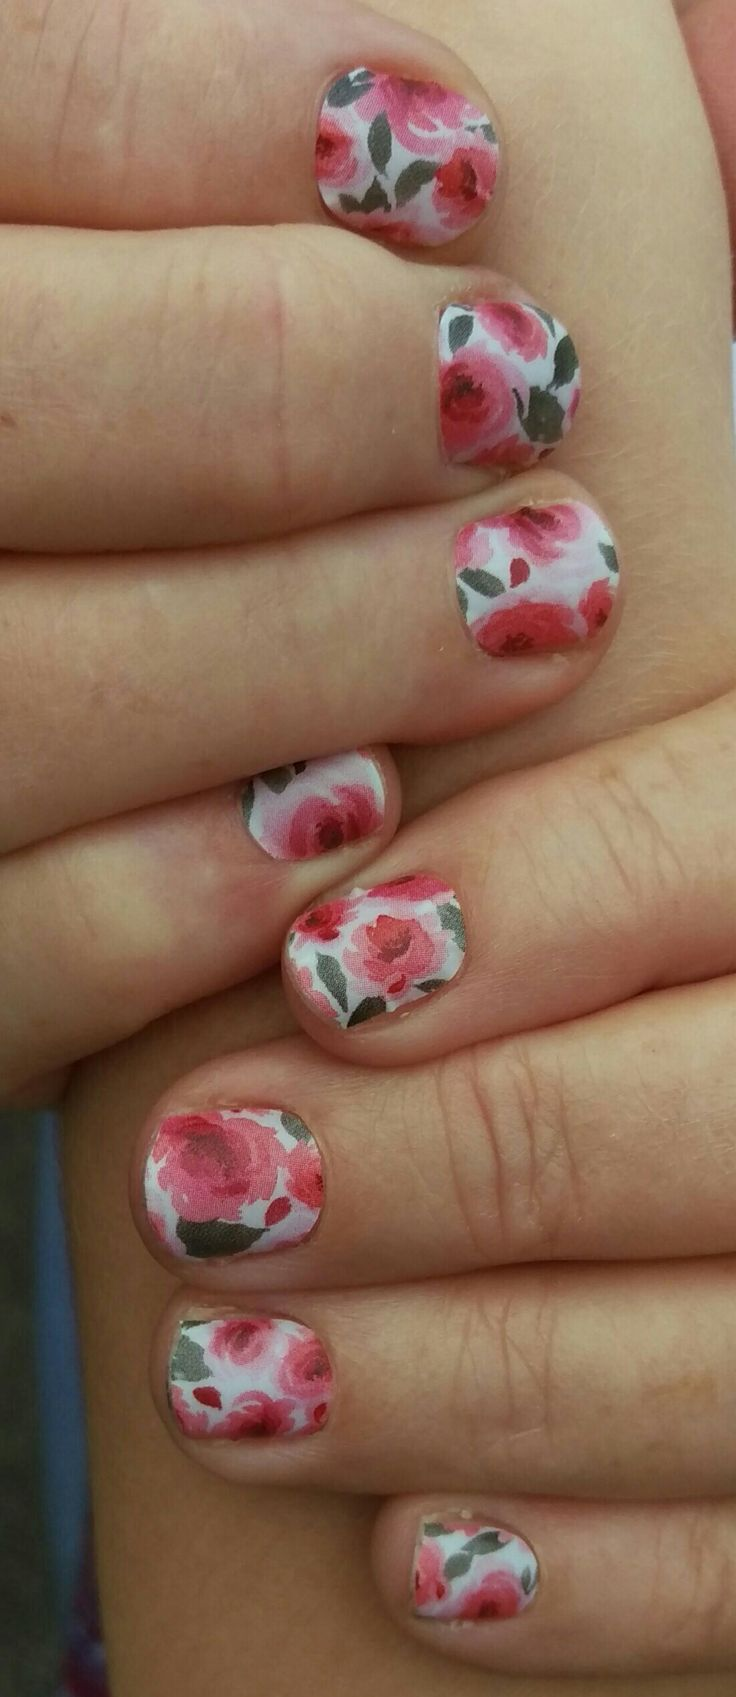 VIP wearing 'Floral punch' Jamberry wrap